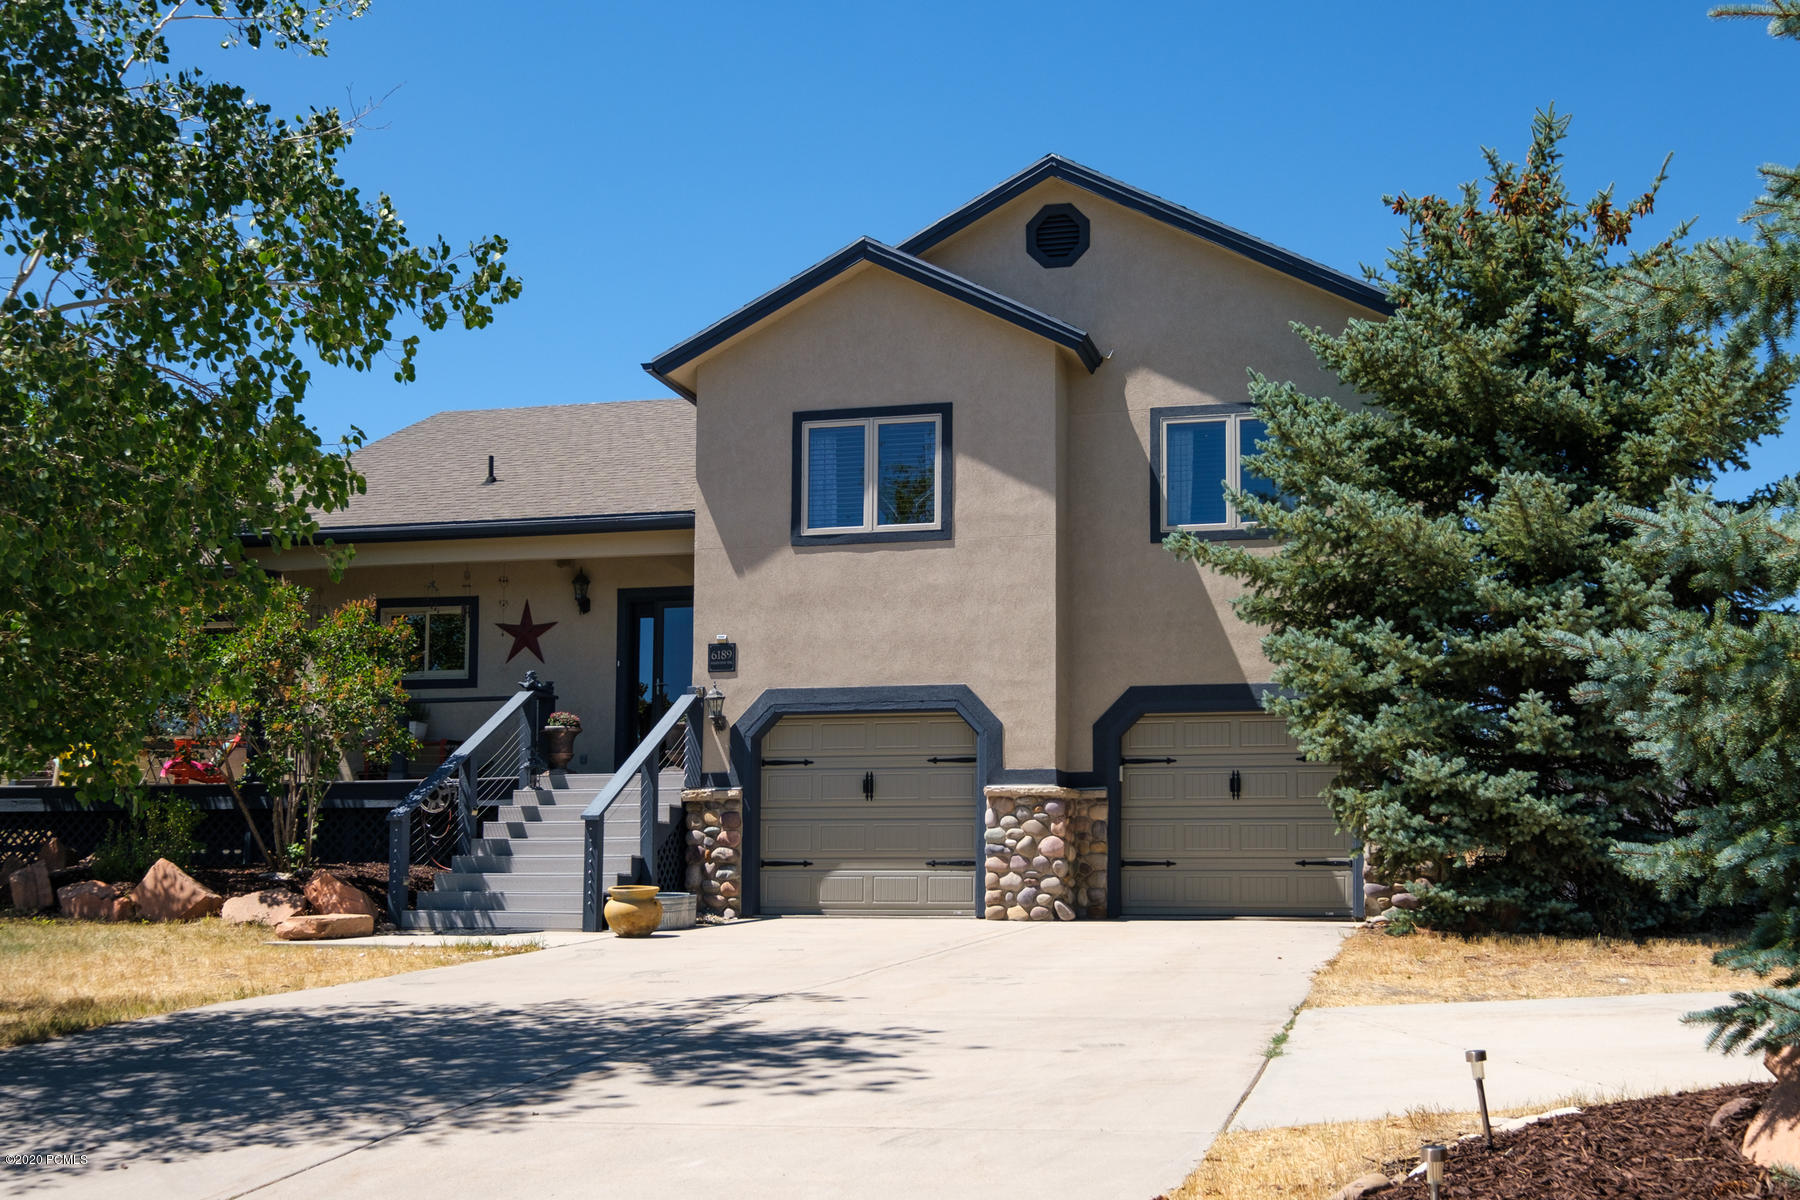 6189 Fairview Drive, Park City, Utah 84098, 4 Bedrooms Bedrooms, ,3 BathroomsBathrooms,Single Family,For Sale,Fairview,12002893